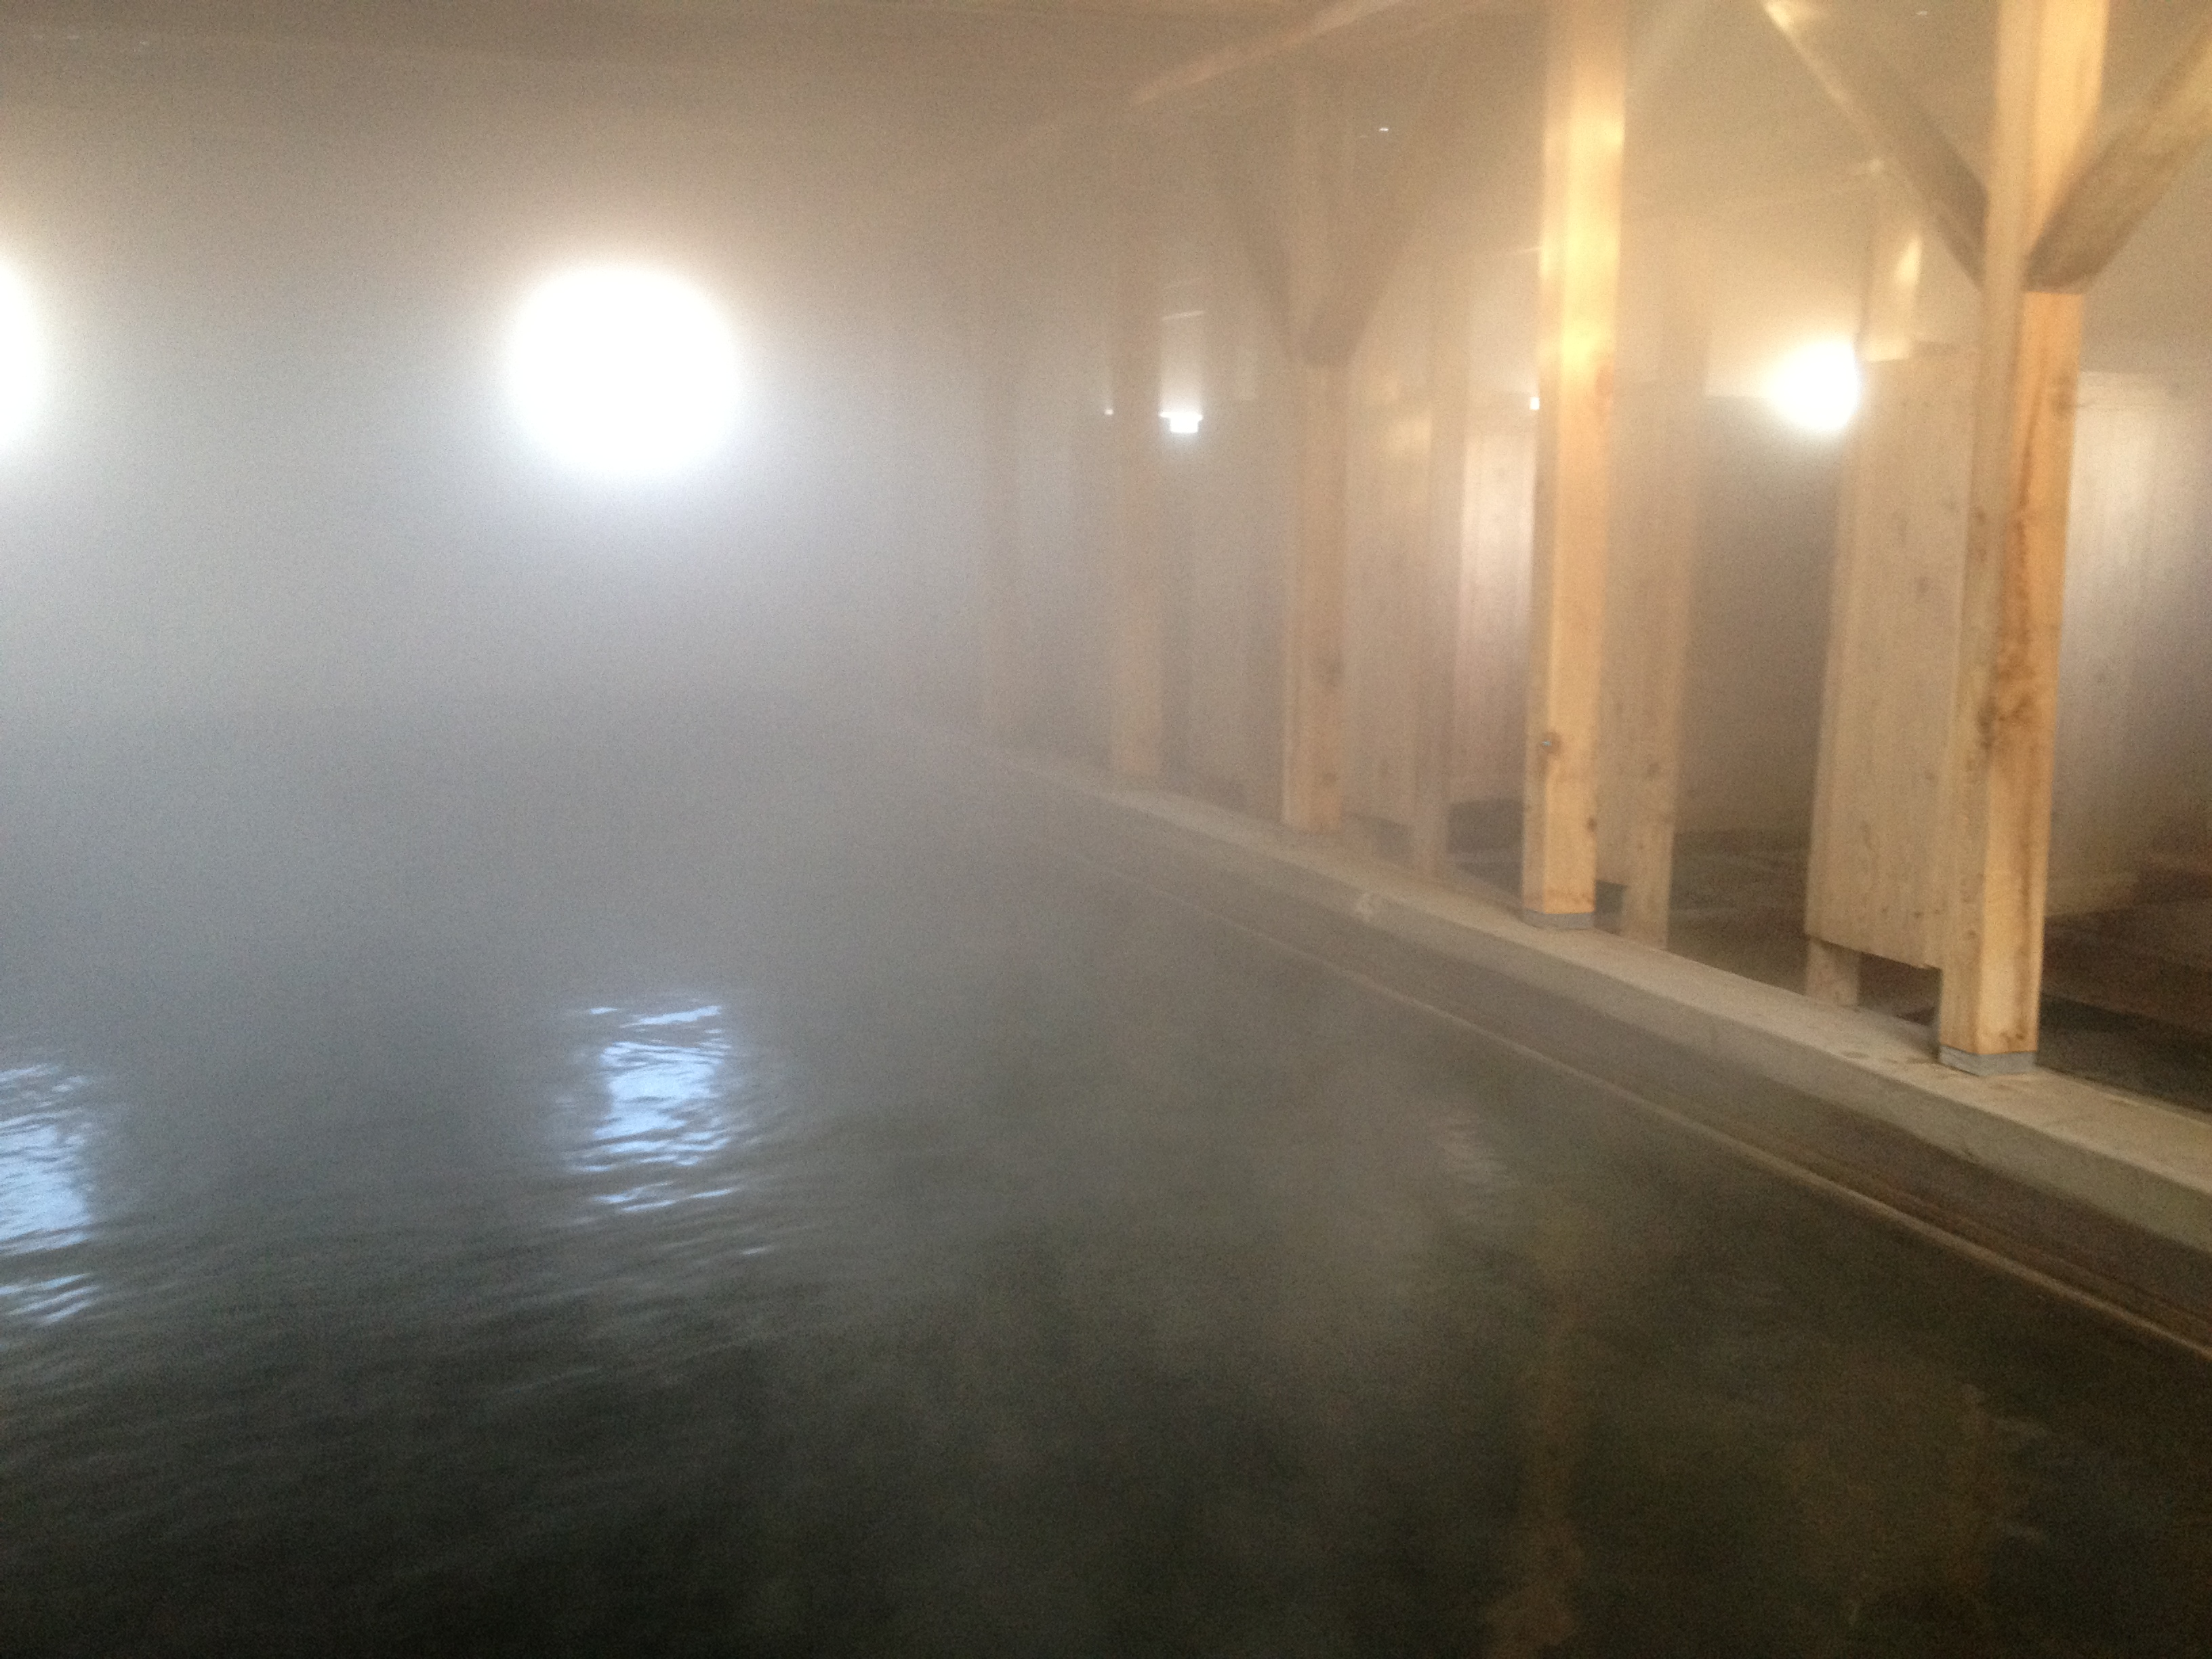 My morning began in the Summer Lake Hot Springs indoor bathhouse